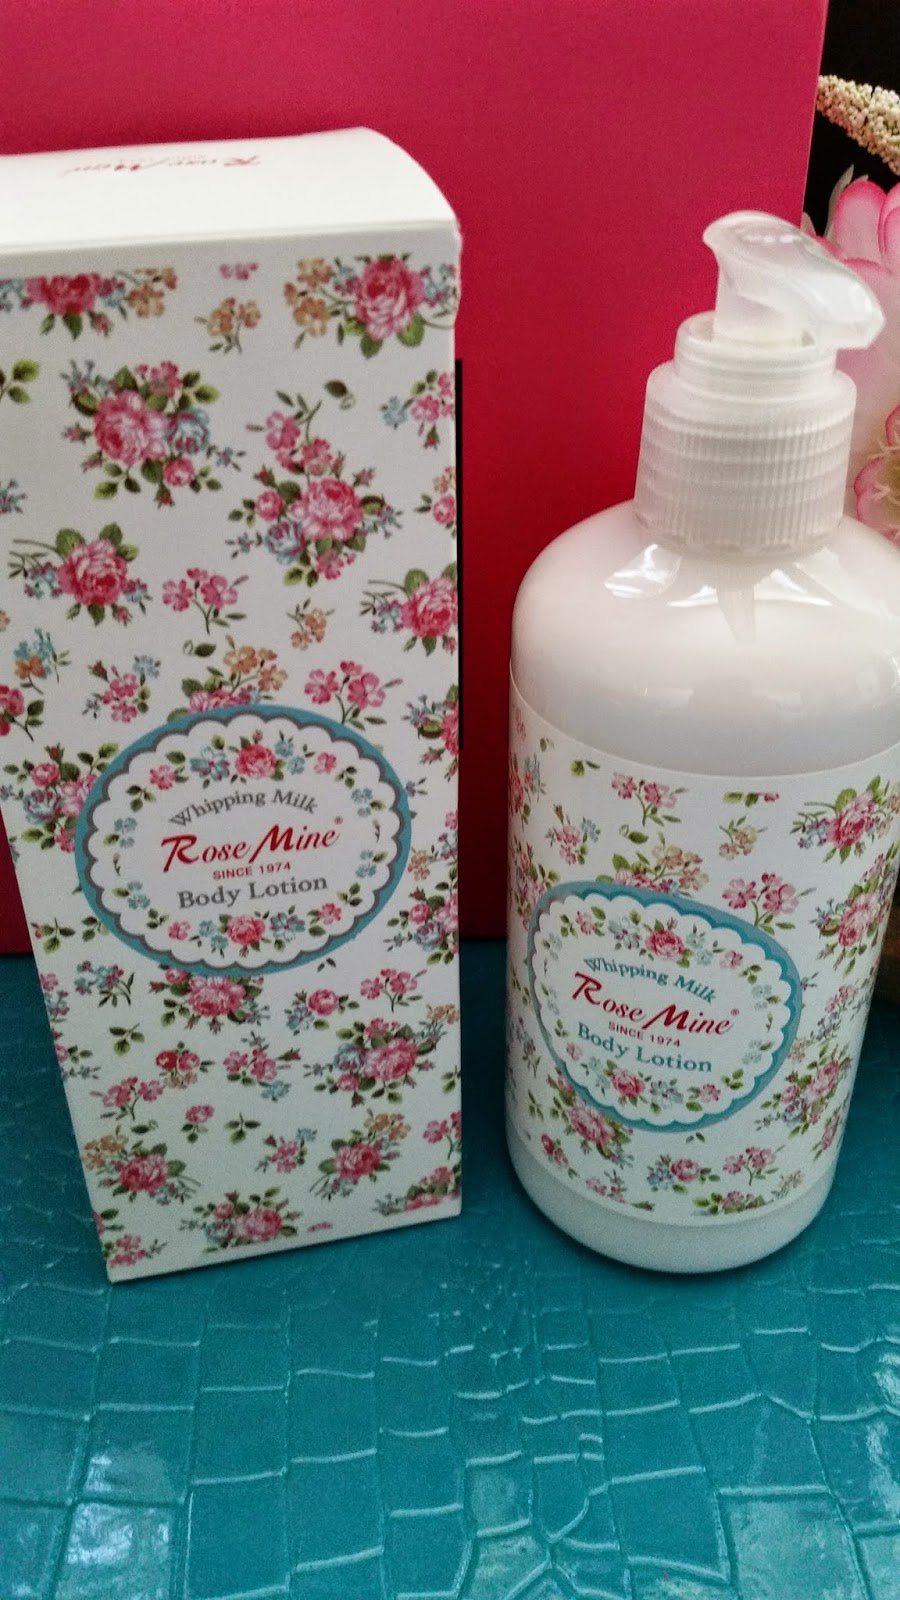 Rosemine Whipping Milk Body Lotion